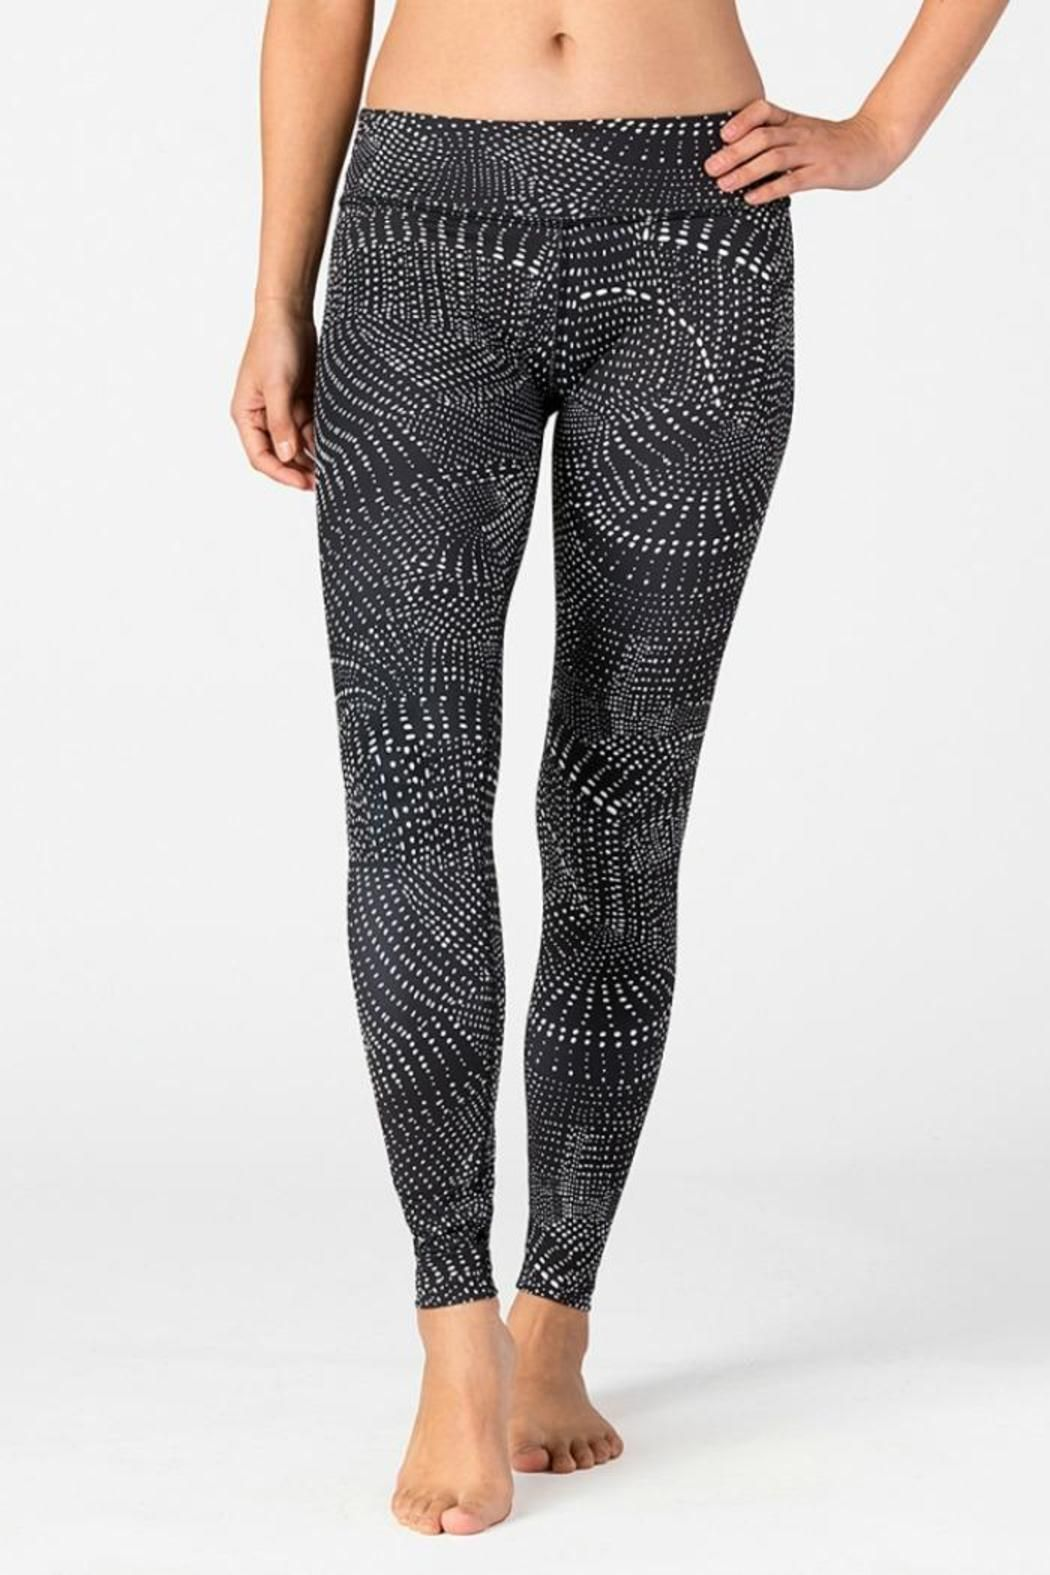 """We have you covered from head to toe in Beyond Yoga's Swirling Dots Legging. The unique pattern adds a fun twist to your usual workout attire. Similar to the ever-so-loved Essential Long Legging, the signature waistband and ankle length are perfect for all day wear. No outside seam. Ankle length. Supplex interior waistband 3"""" signature waistband.   Swirling Dots Leggings by Beyond Yoga. Clothing - Activewear Michigan"""